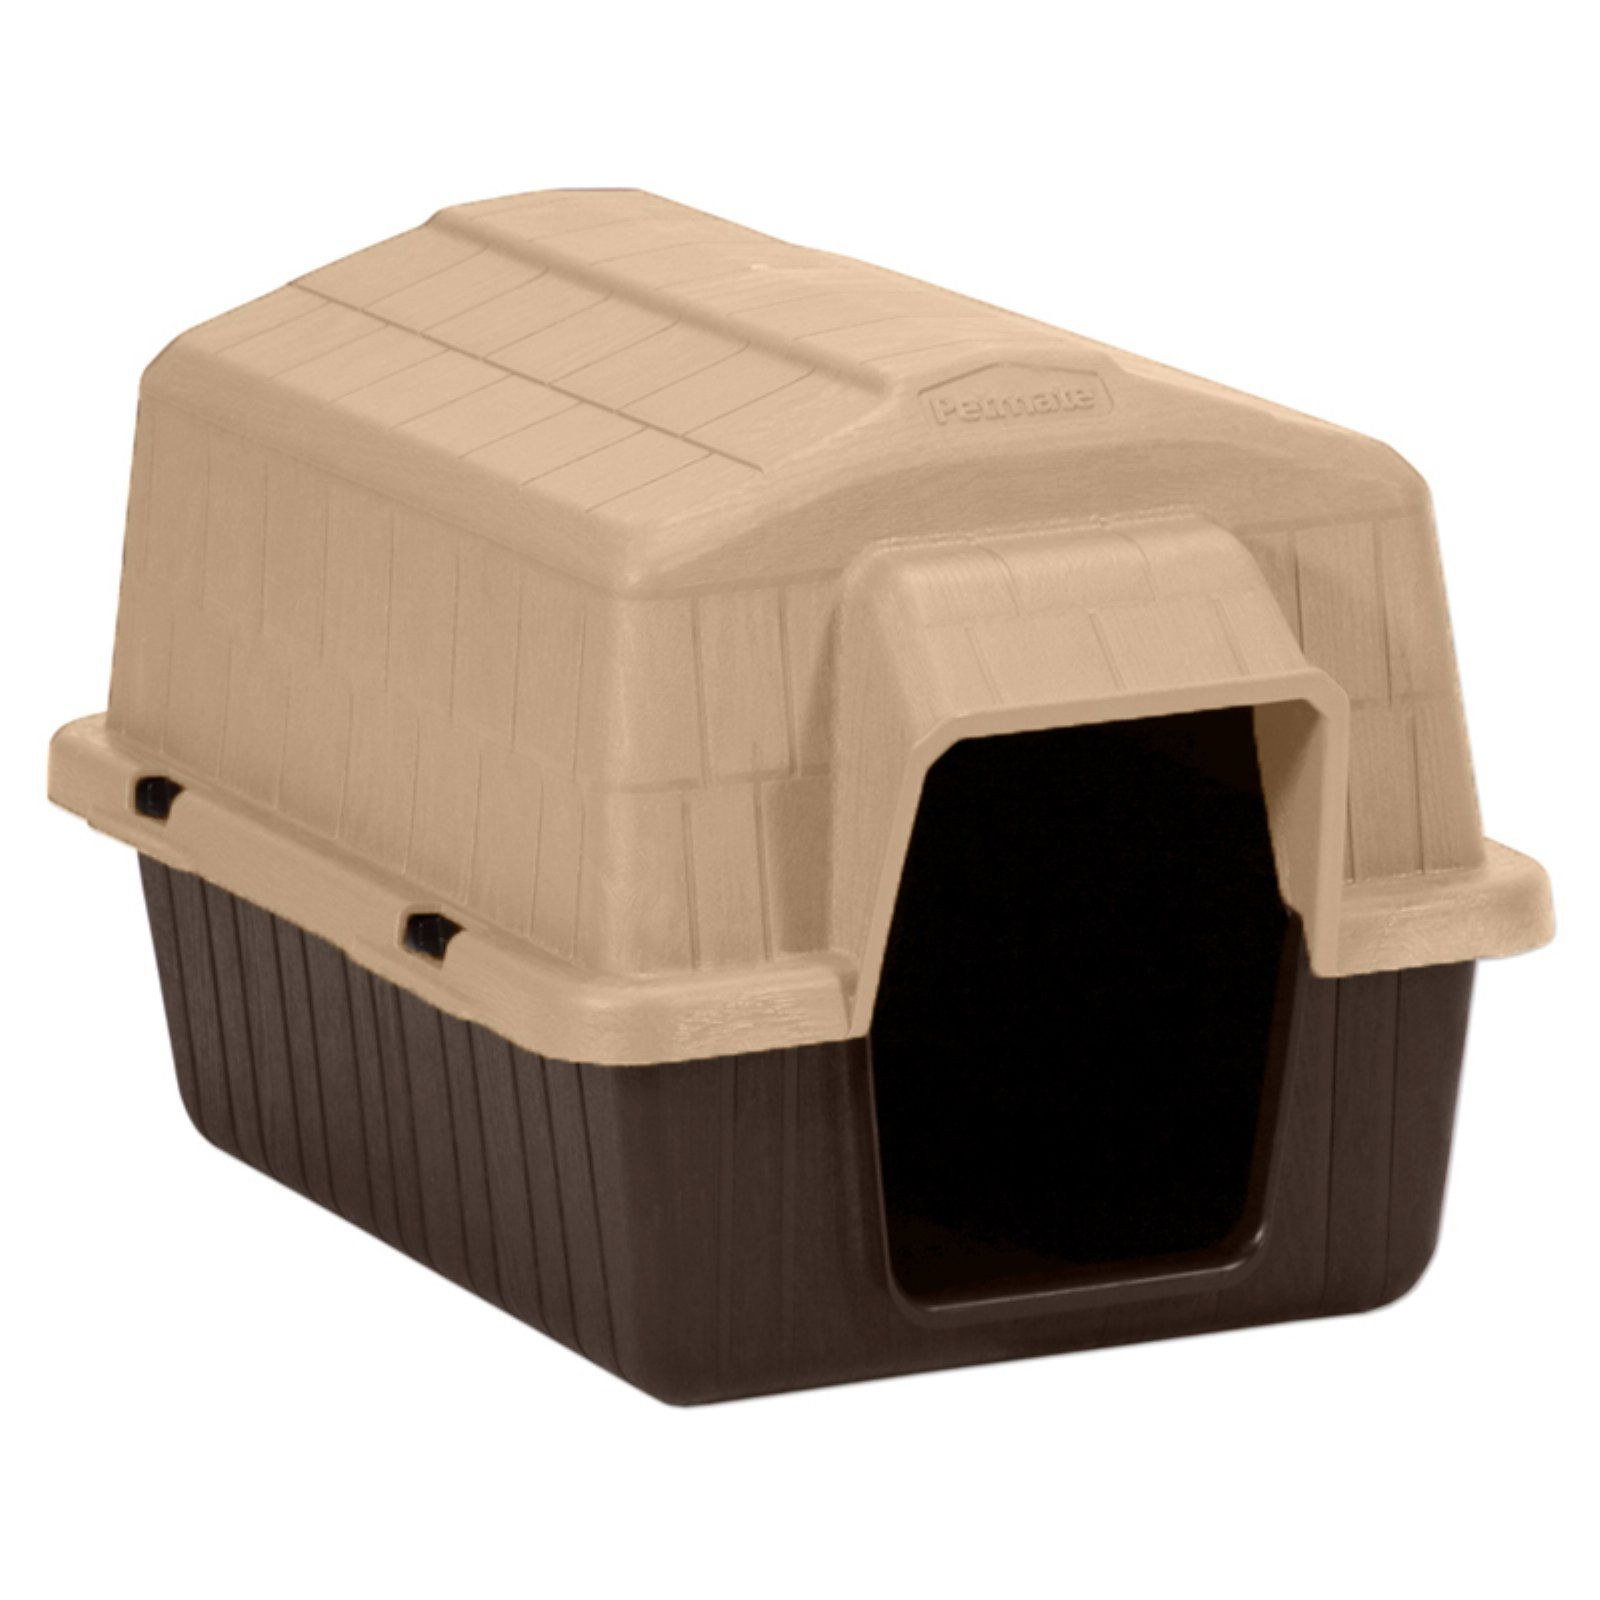 "Aspen Pet Petbarn 3 Plastic Dog House, Small, 26.5""x18""x16.5"""